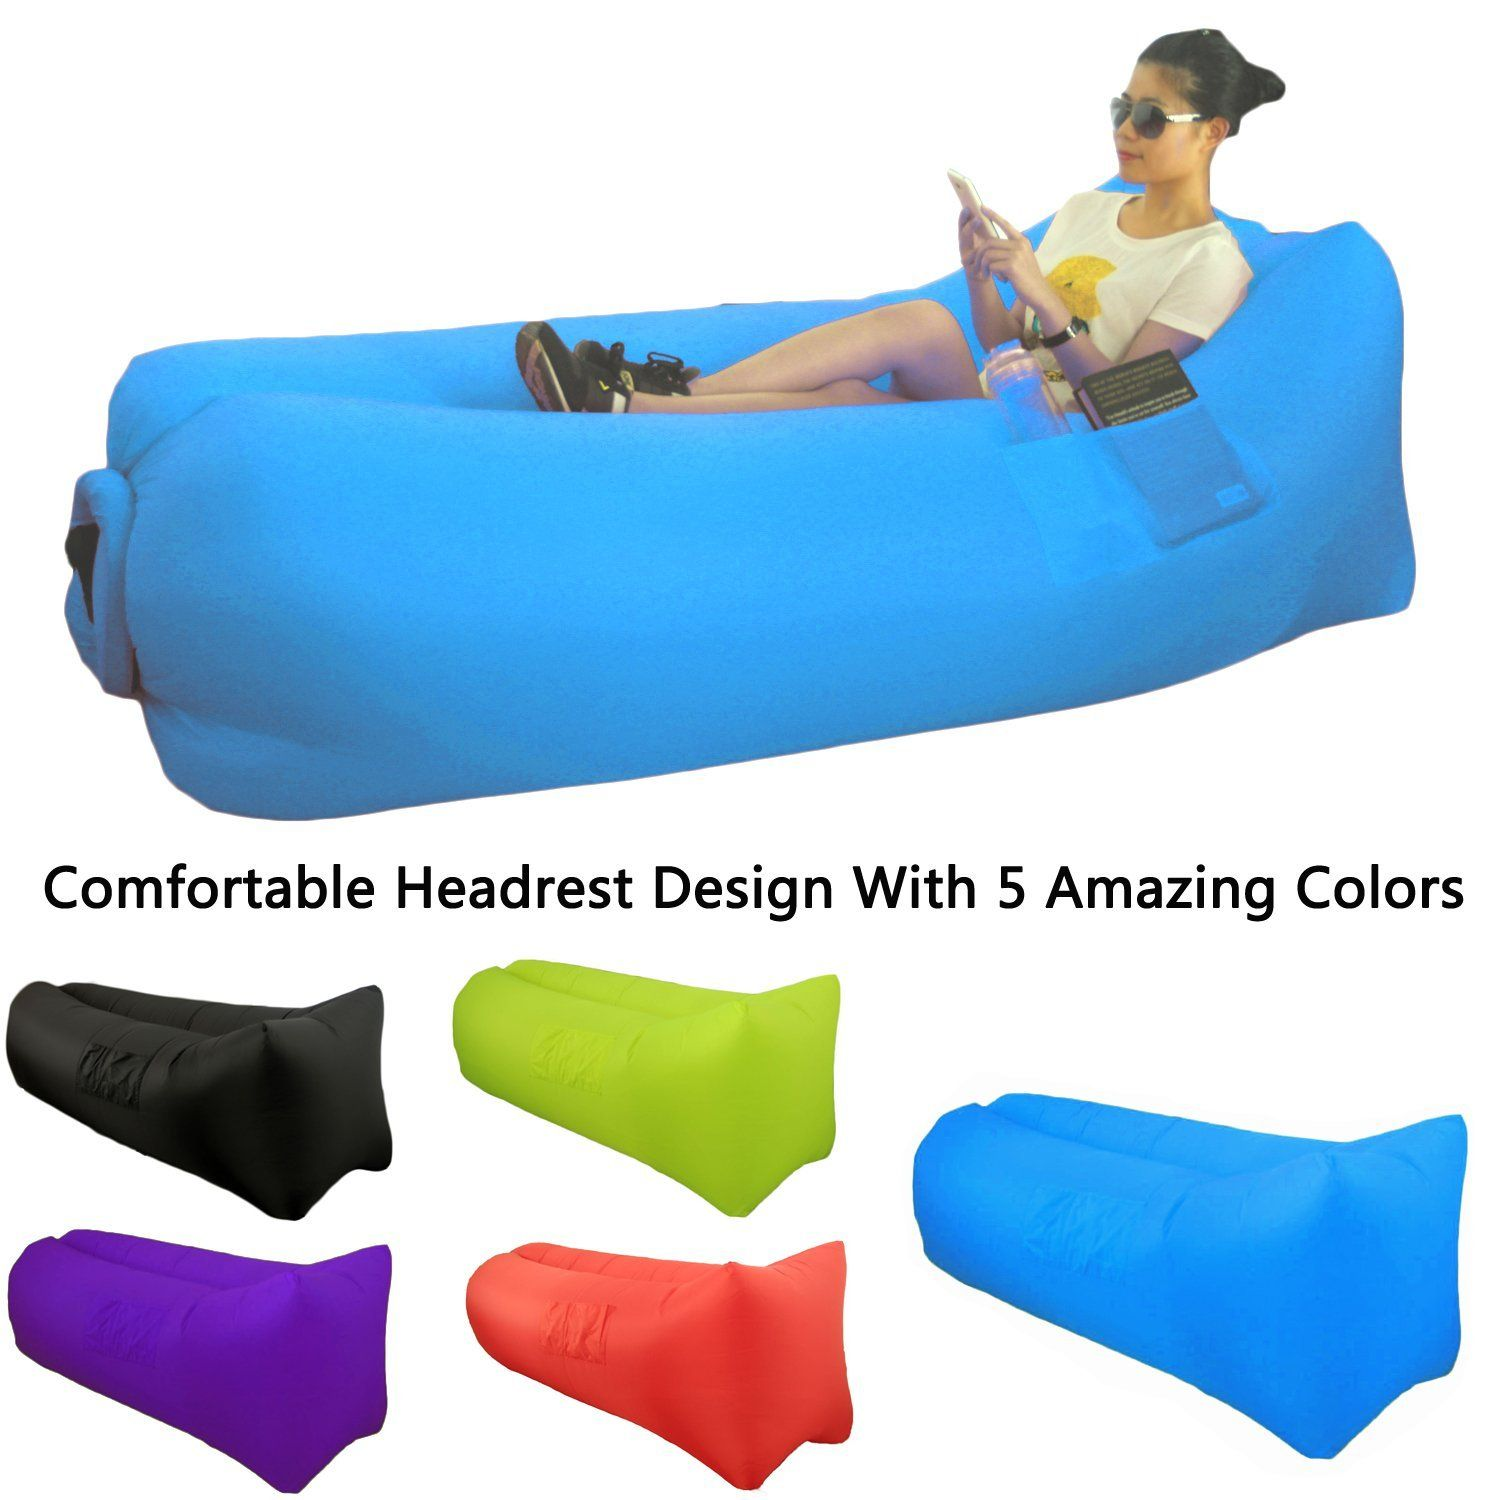 Great Home Inflatable Lounger Air Sofa with fortable Headrest